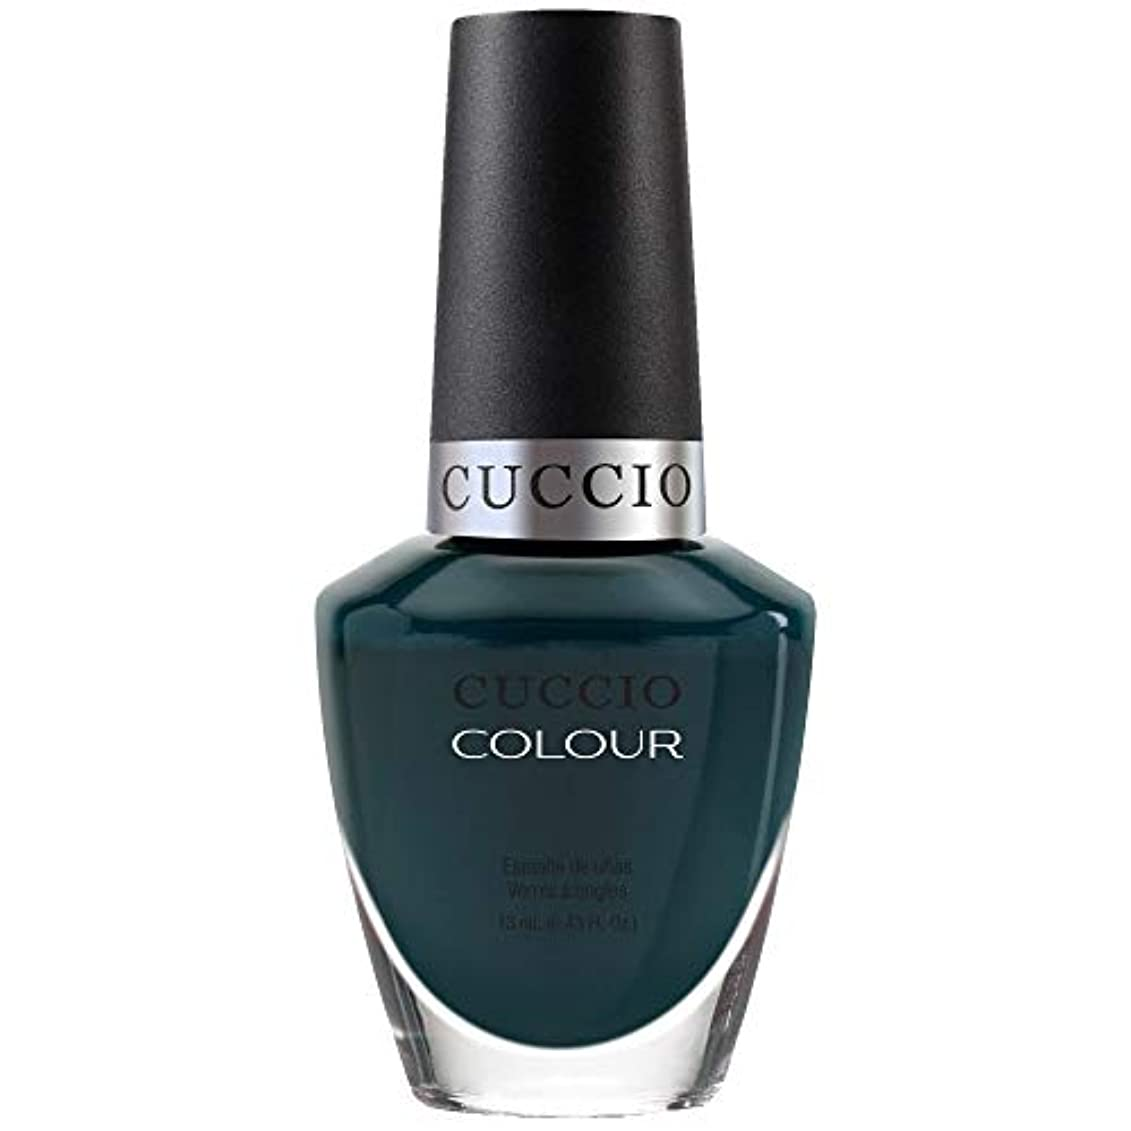 共和党貼り直す傾向がありますCuccio Colour Gloss Lacquer - Prince I've Been Gone - 0.43oz / 13ml